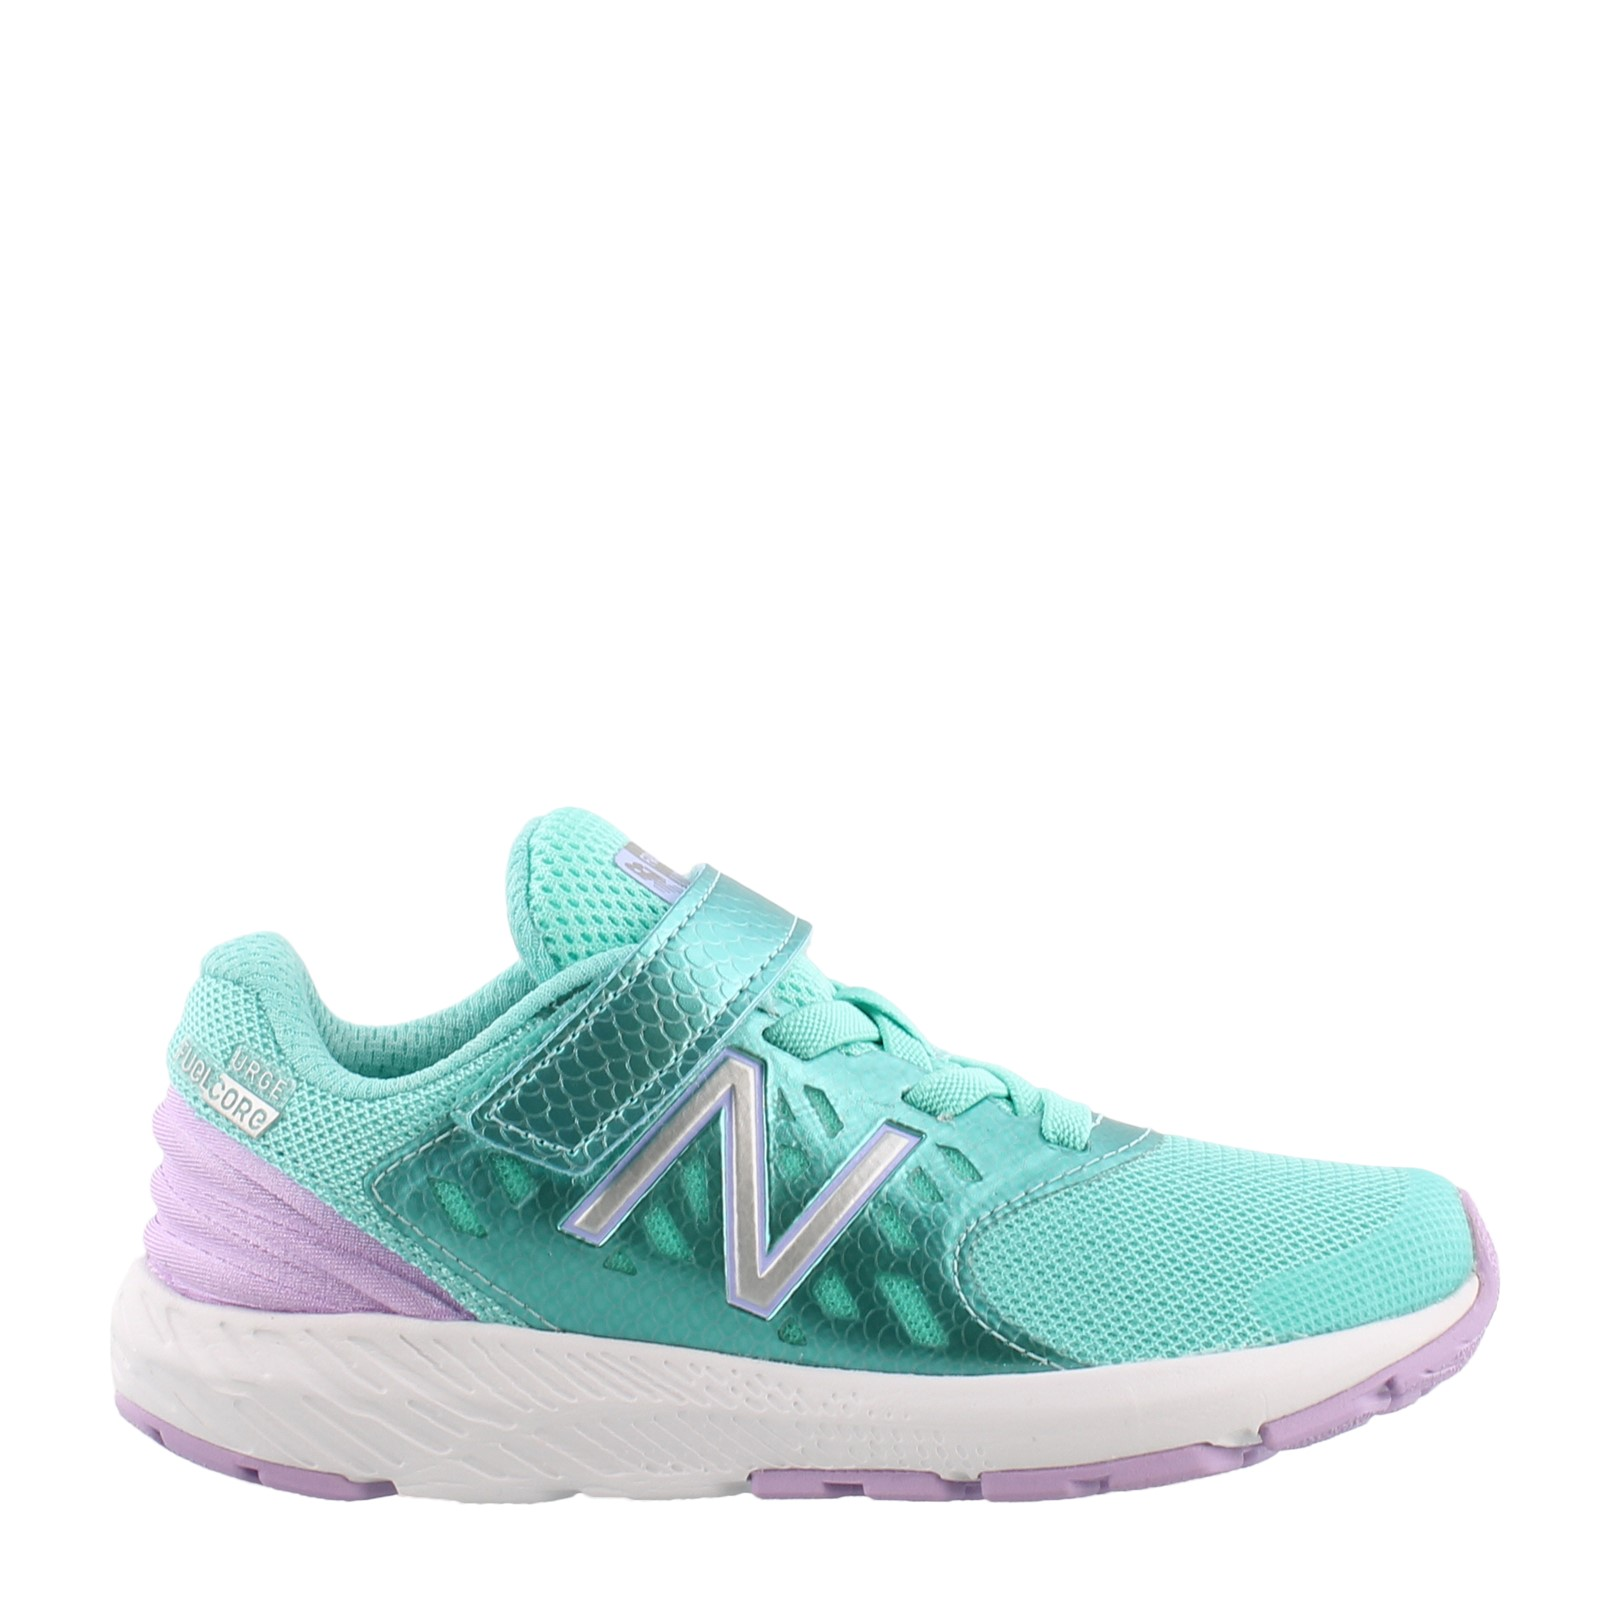 Girl's New Balance, Urge v2 Sneakers